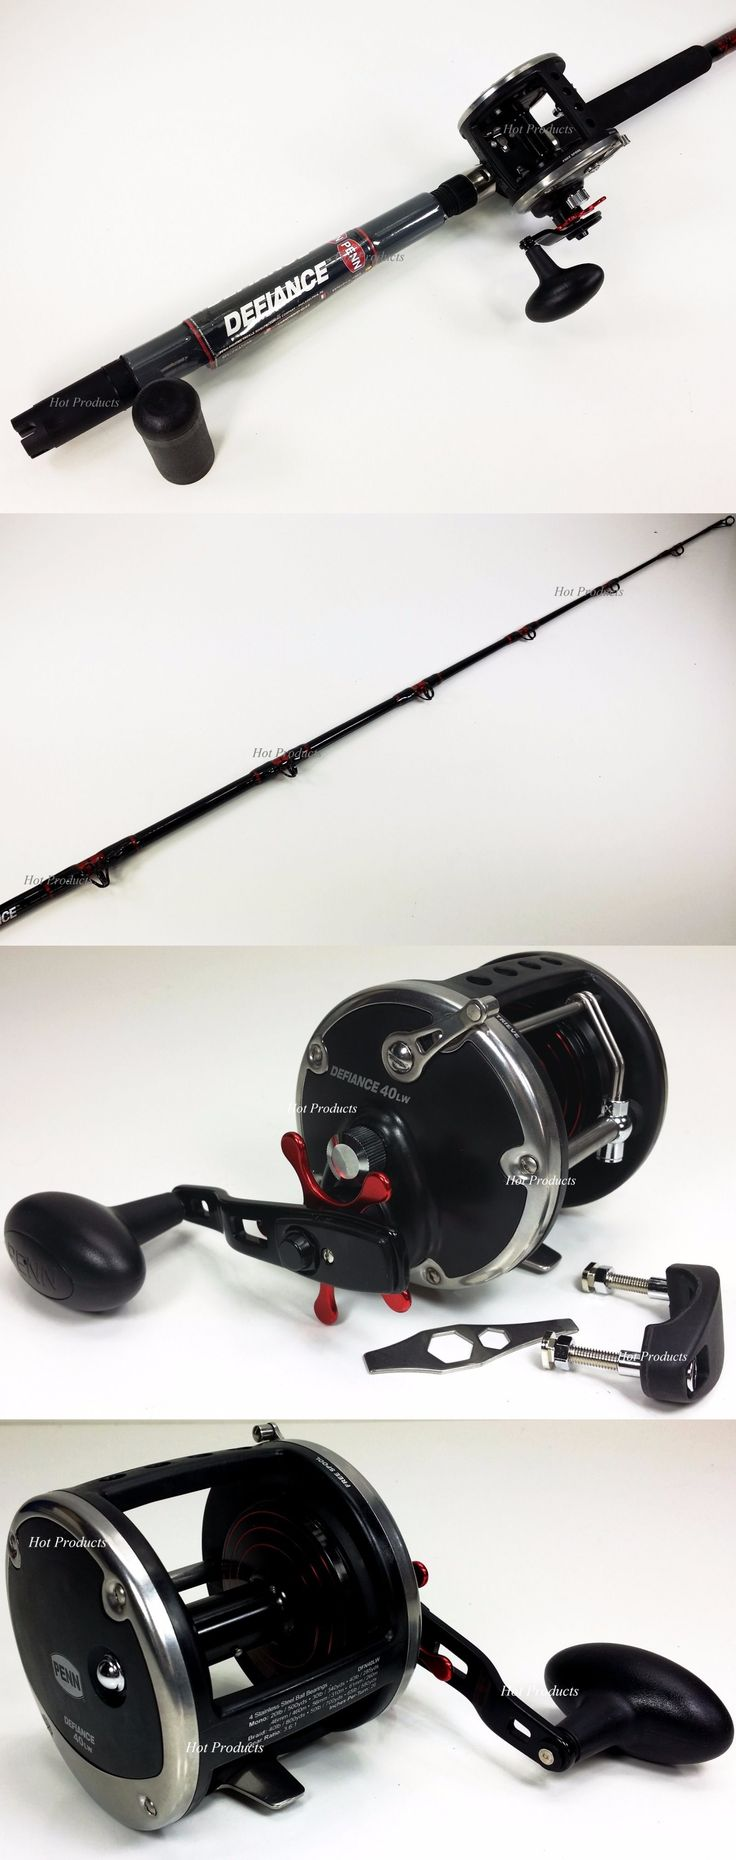 Saltwater Combos 179959: Penn Defiance 30-50 Boat Rod W/ 40Lw Conventional Levelwind Fishing Reel BUY IT NOW ONLY: $119.95